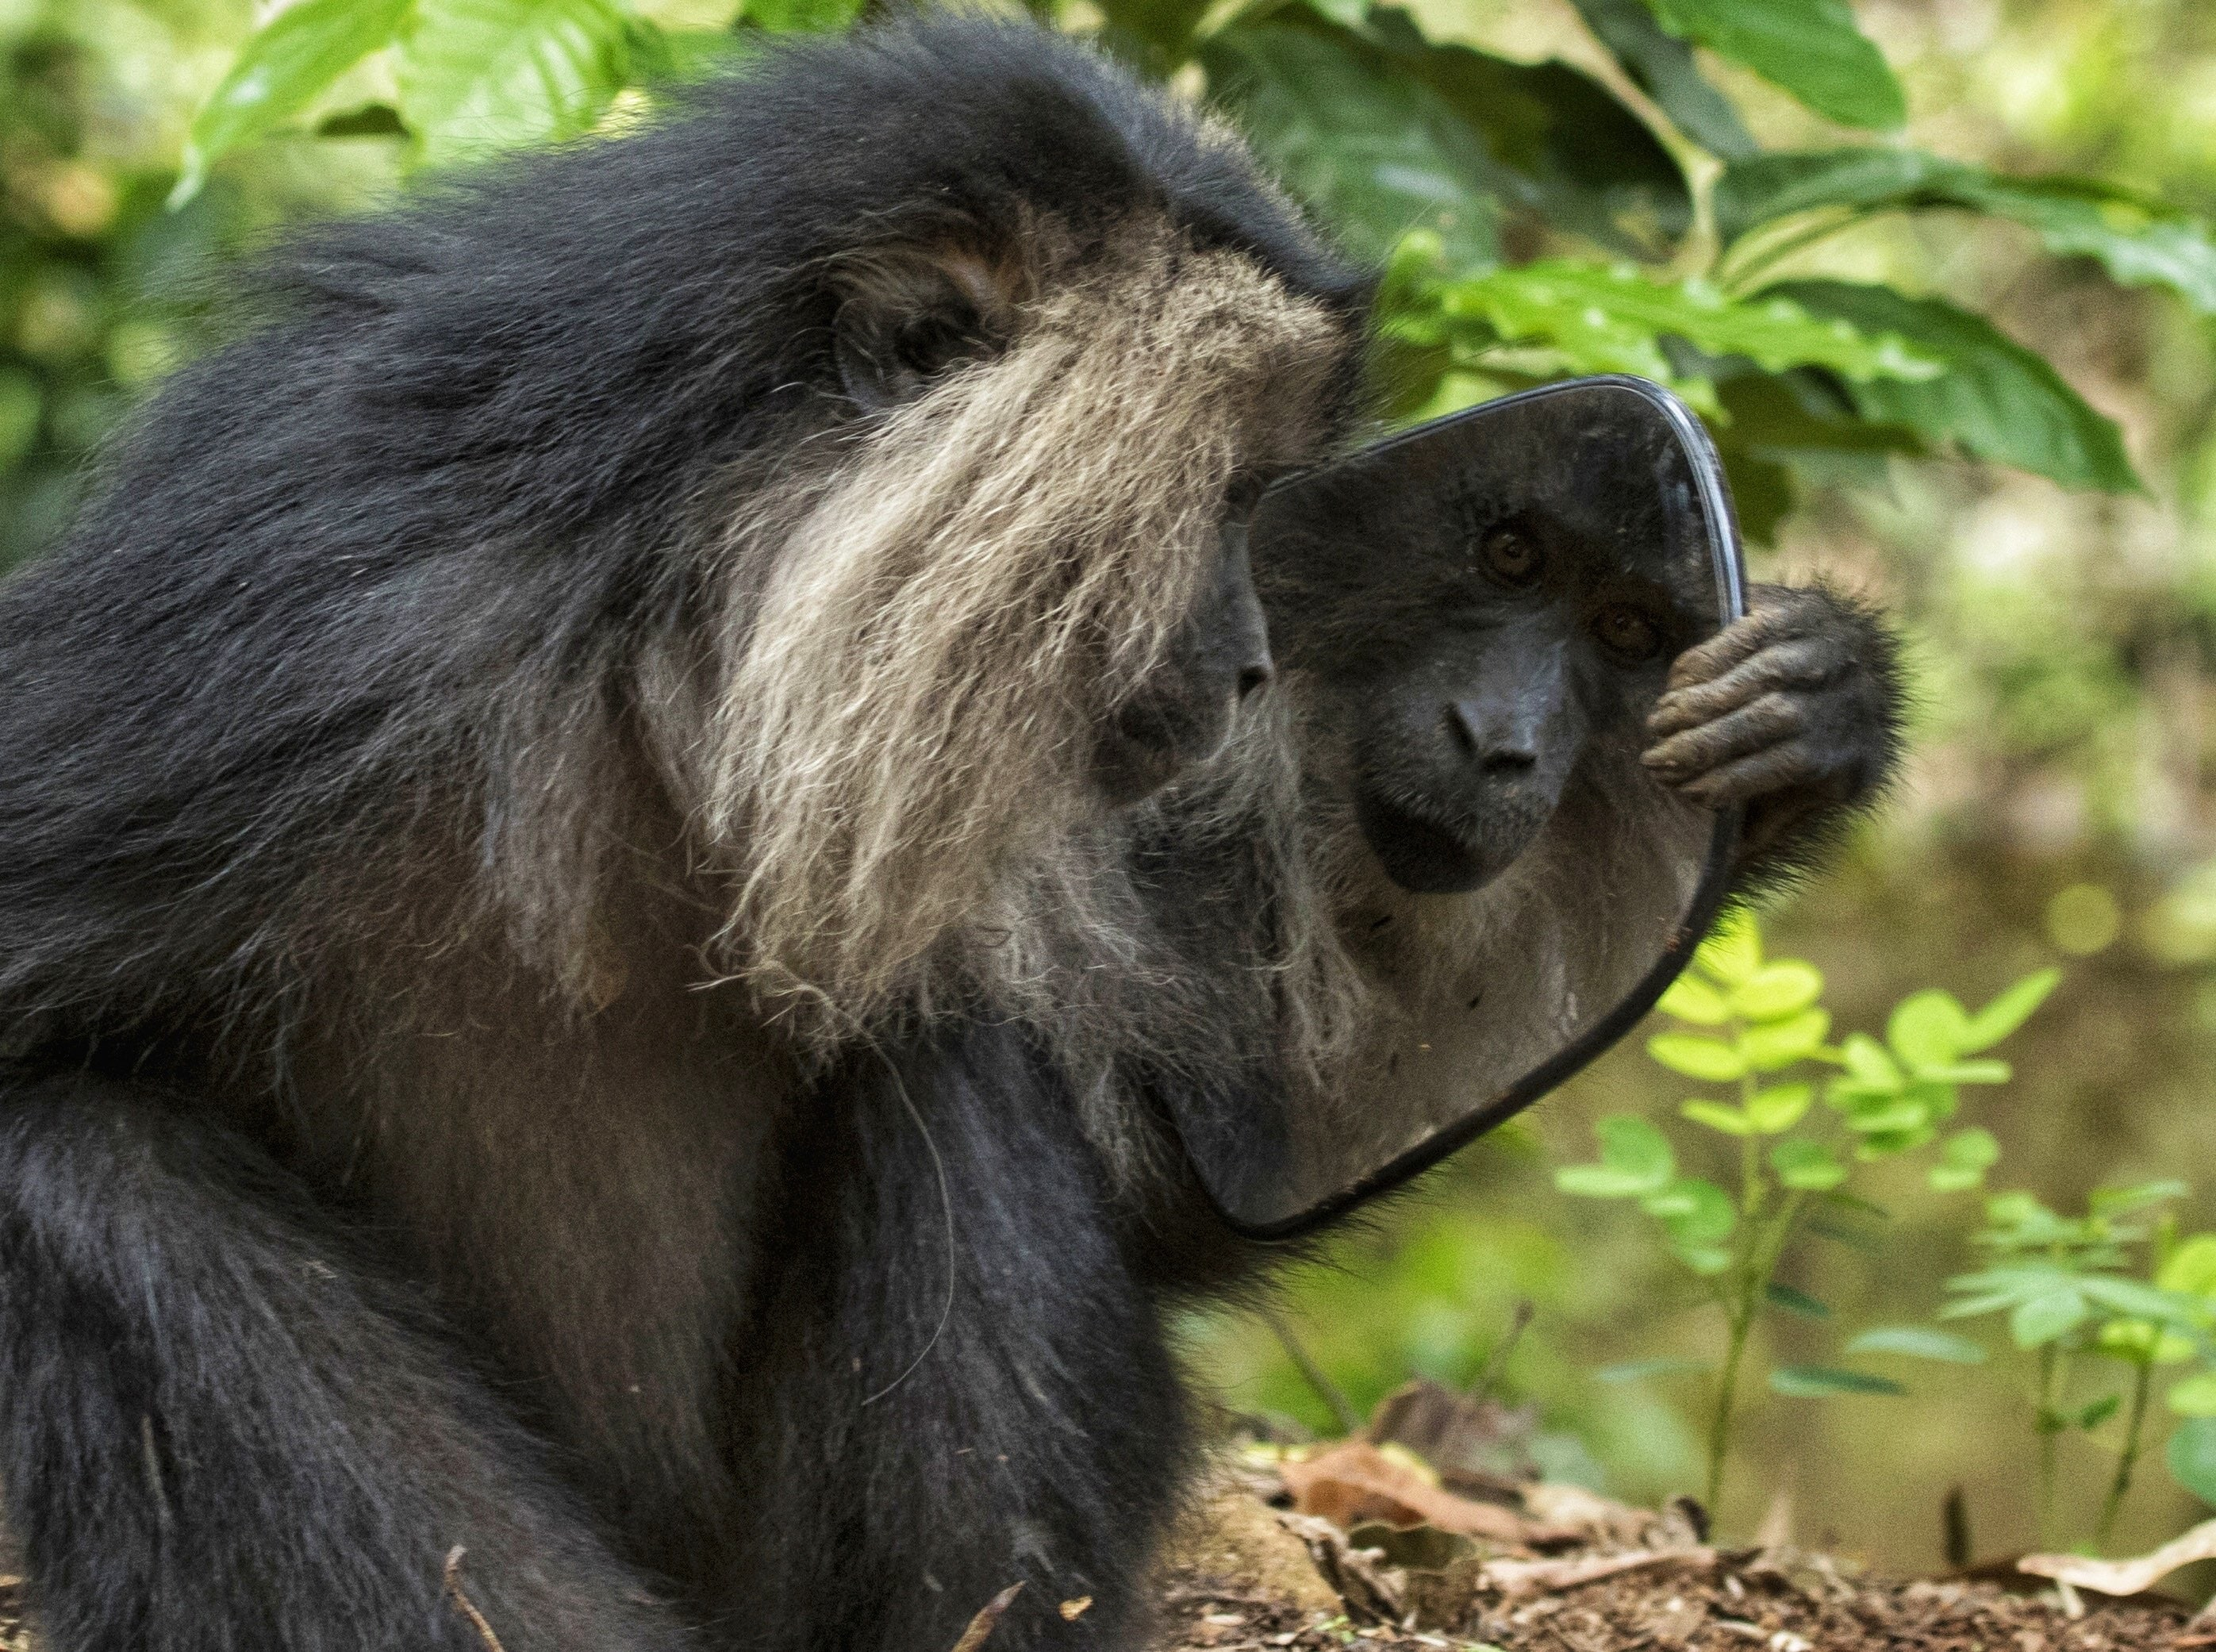 With the gradual loss of the tree canopy to live in and feed upon, these shy primates are forced to venture into areas inhabited by humans. But all is not lost. Thanks to conservation efforts, some of their forest habitat has been safeguarded, reducing human-animal conflict and increasing the population of the lion-tailed macaque to just under 4,000. Their strength is inextricably linked to the safety of the forest, and the diversity of the magnificent Western Ghats of India. Photo: Pravin Shanmughanandam